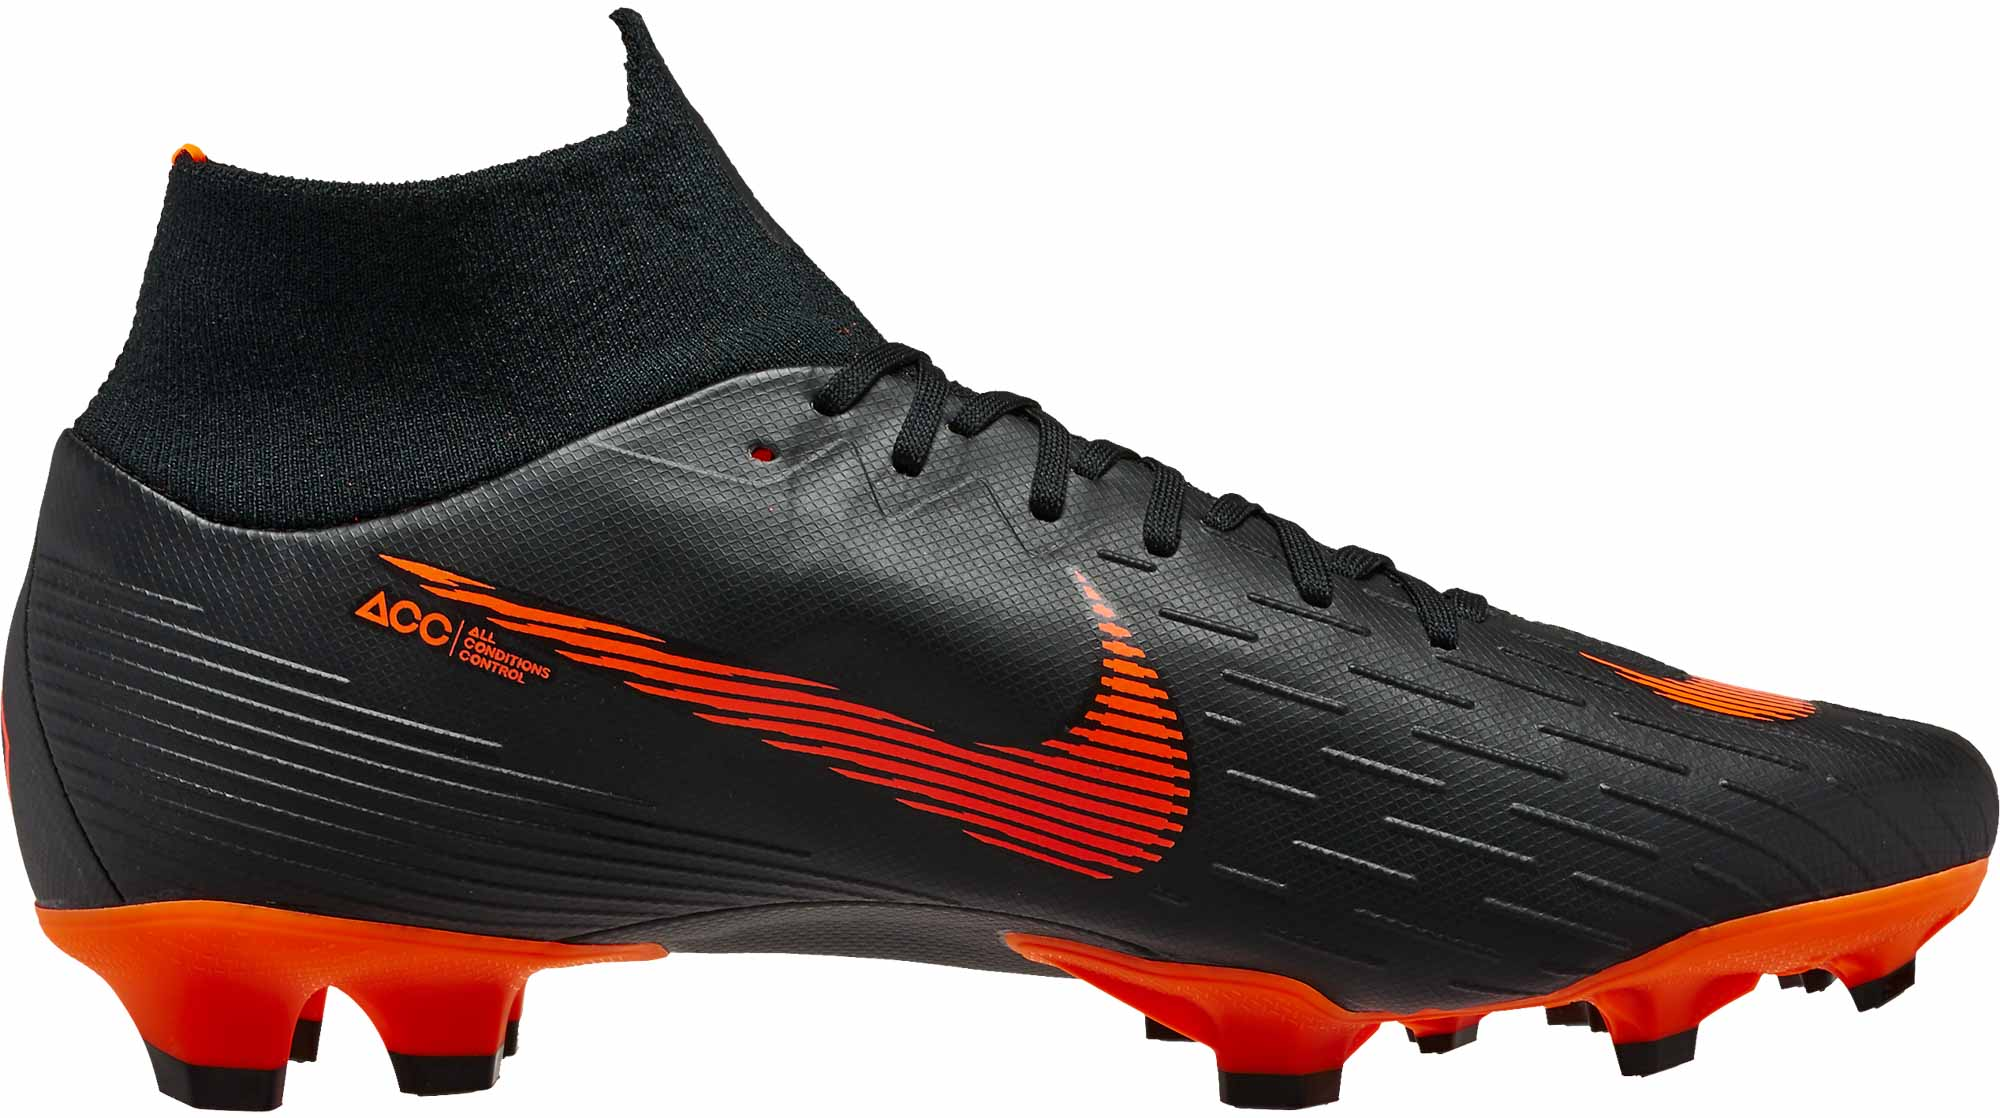 factory authentic cf3a1 d54e8 ireland nike mercurial superfly acc ae0ca 921c9